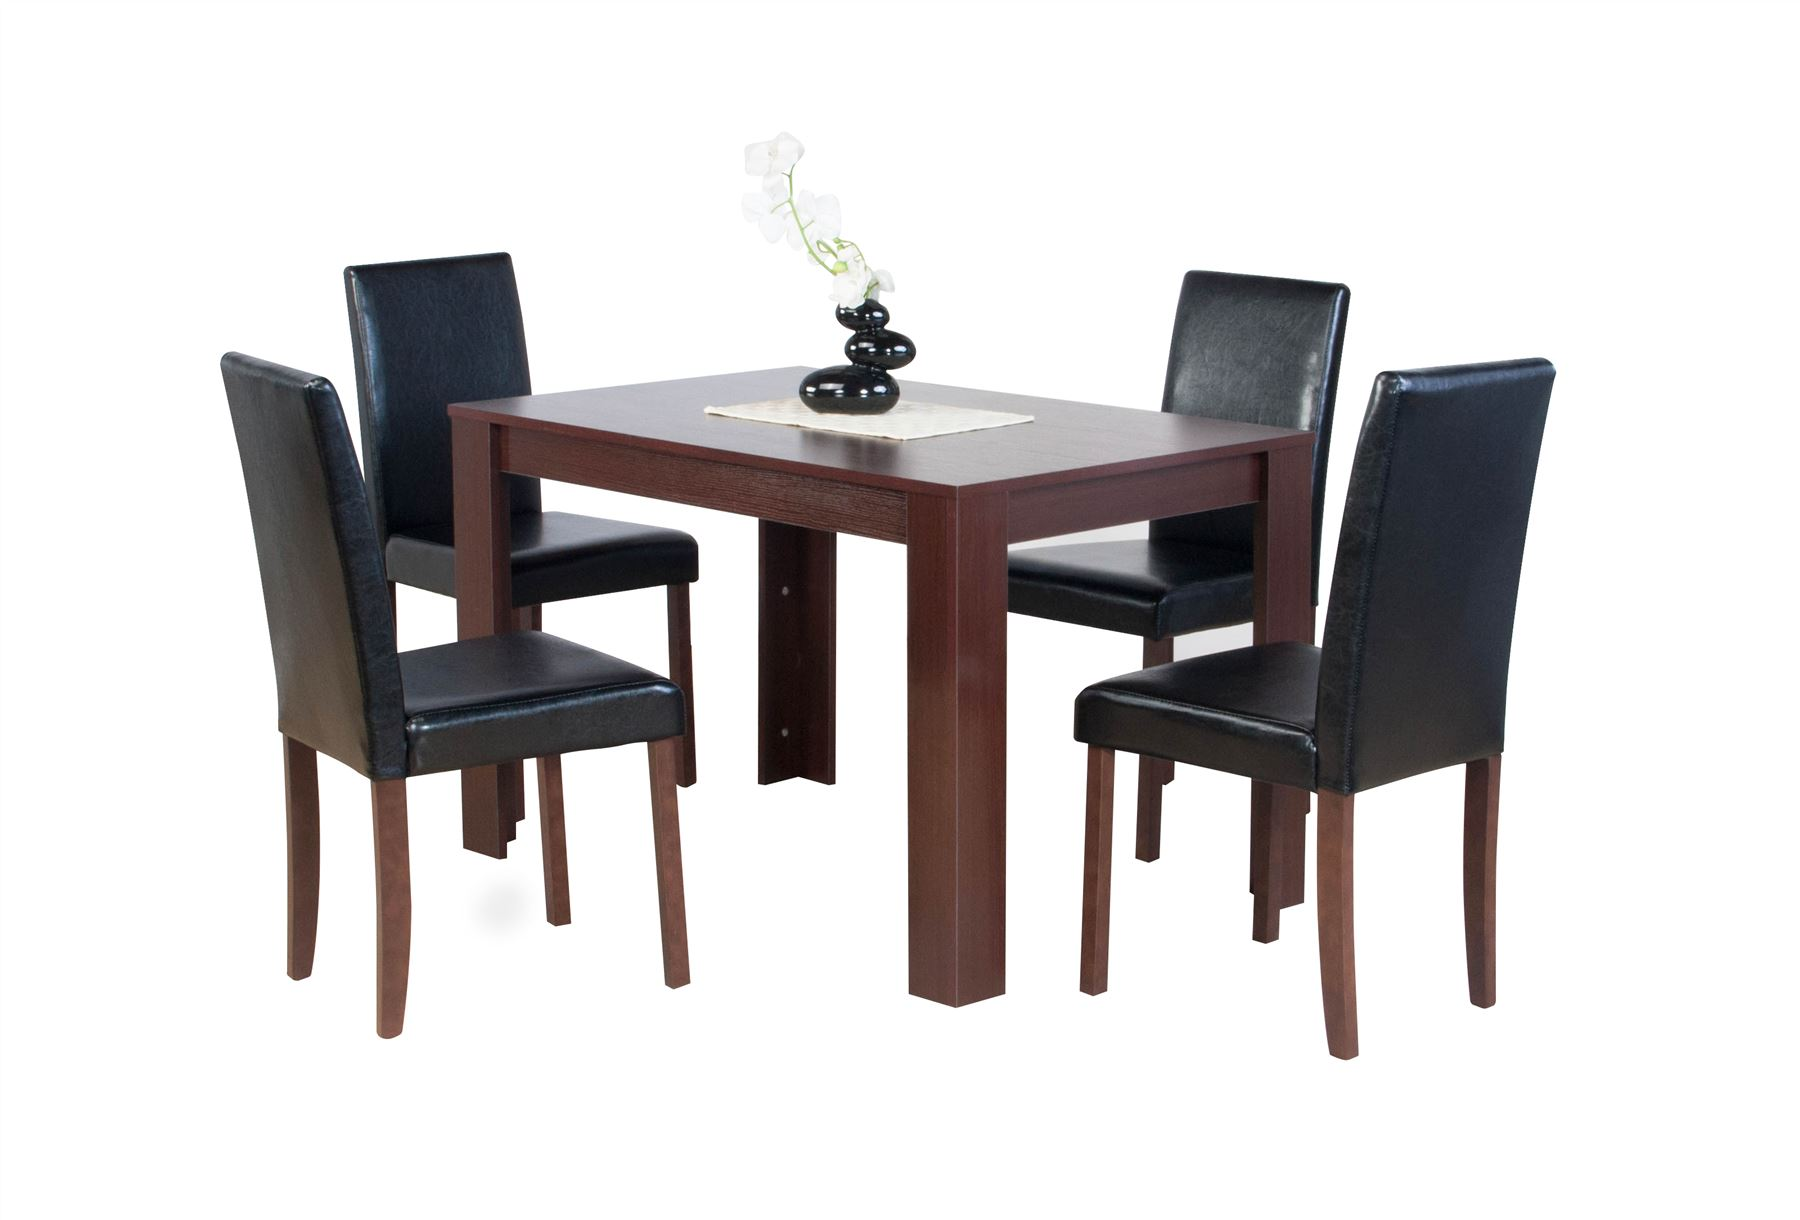 dark brown wooden dining chairs graco duodiner lx high chair instructions dover natural or oak effect table